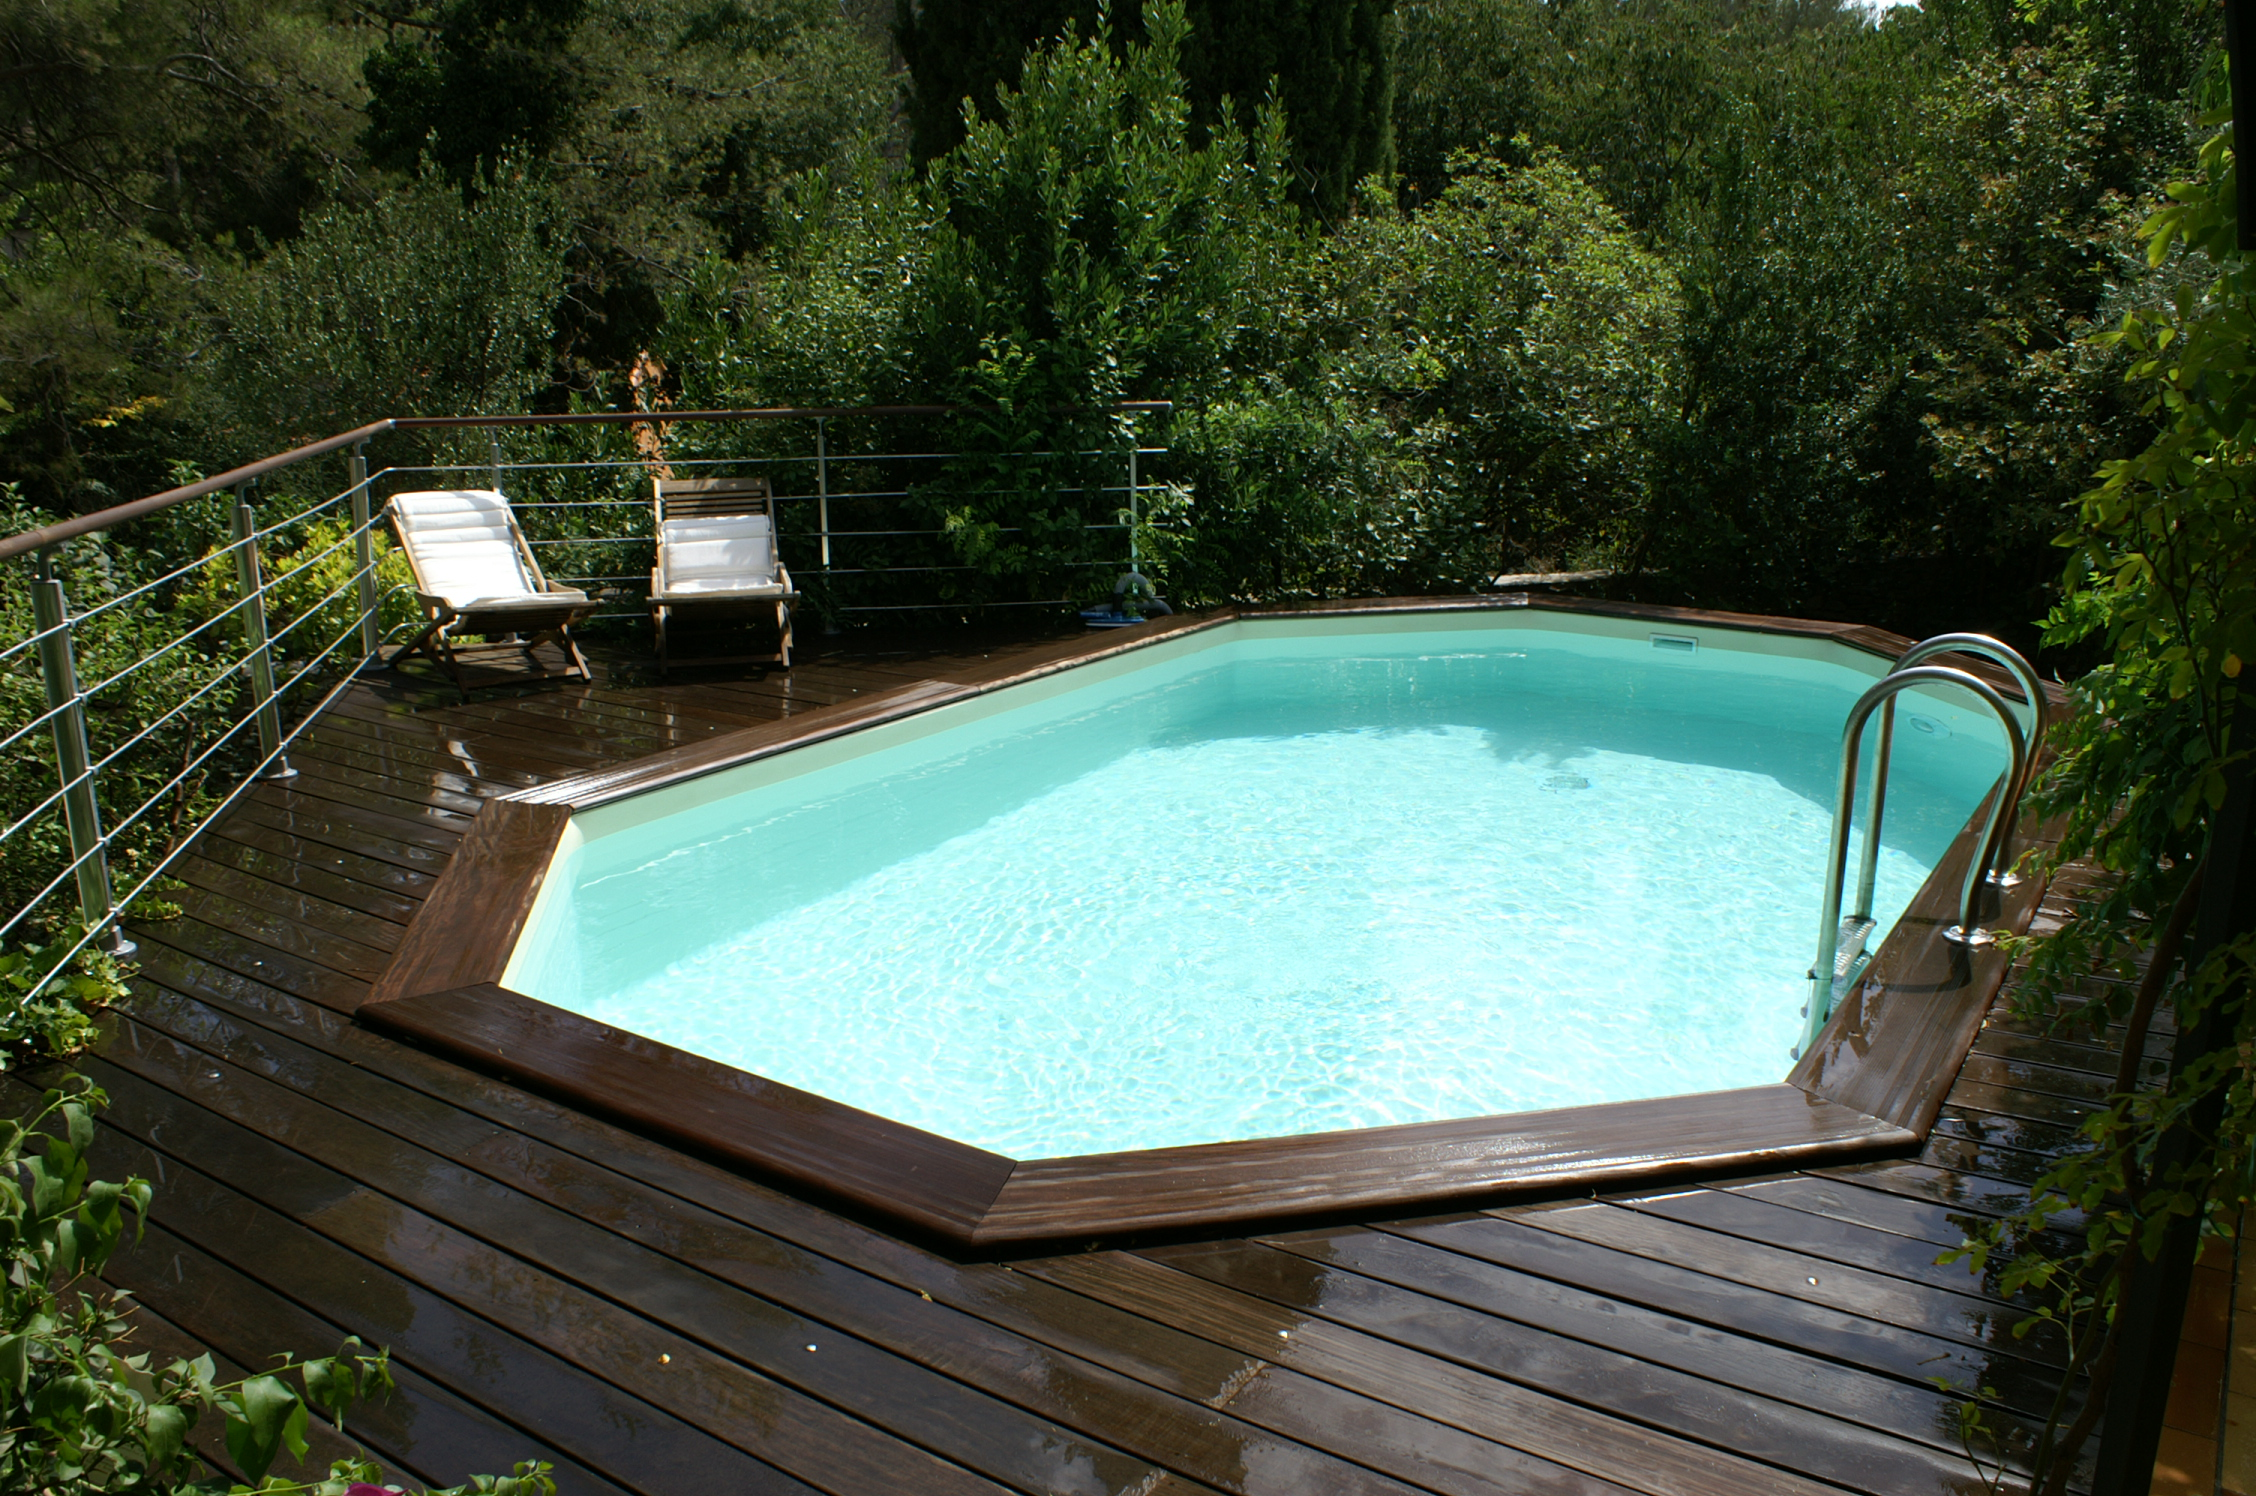 Construction piscines nimes gepad piscines et spa 30000 for Piscine hors sol tarif